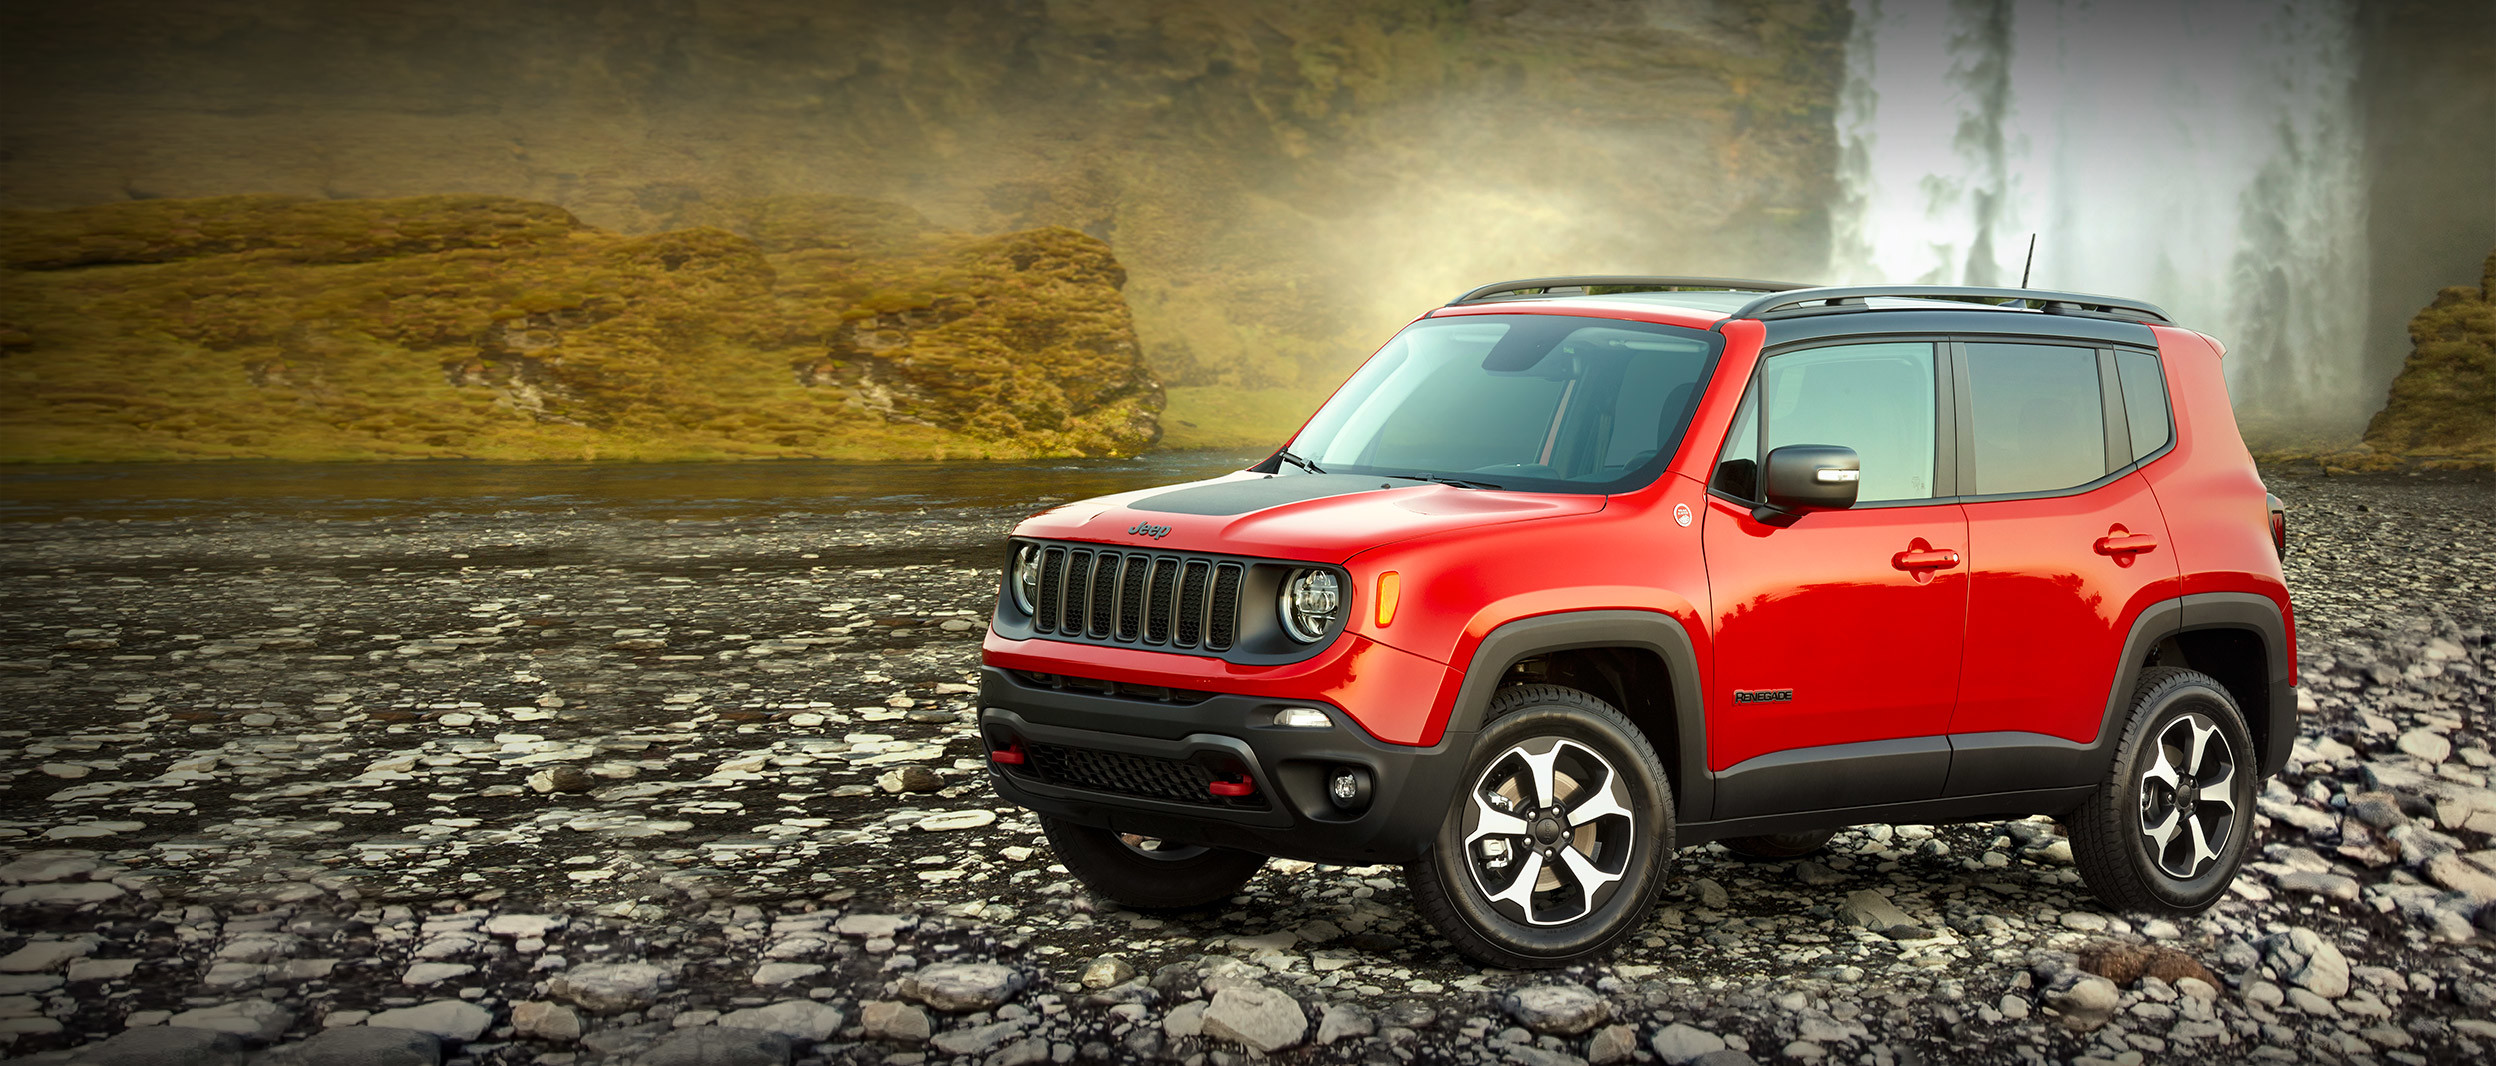 2019 Jeep Renegade red exterior parked in front of a waterfall.